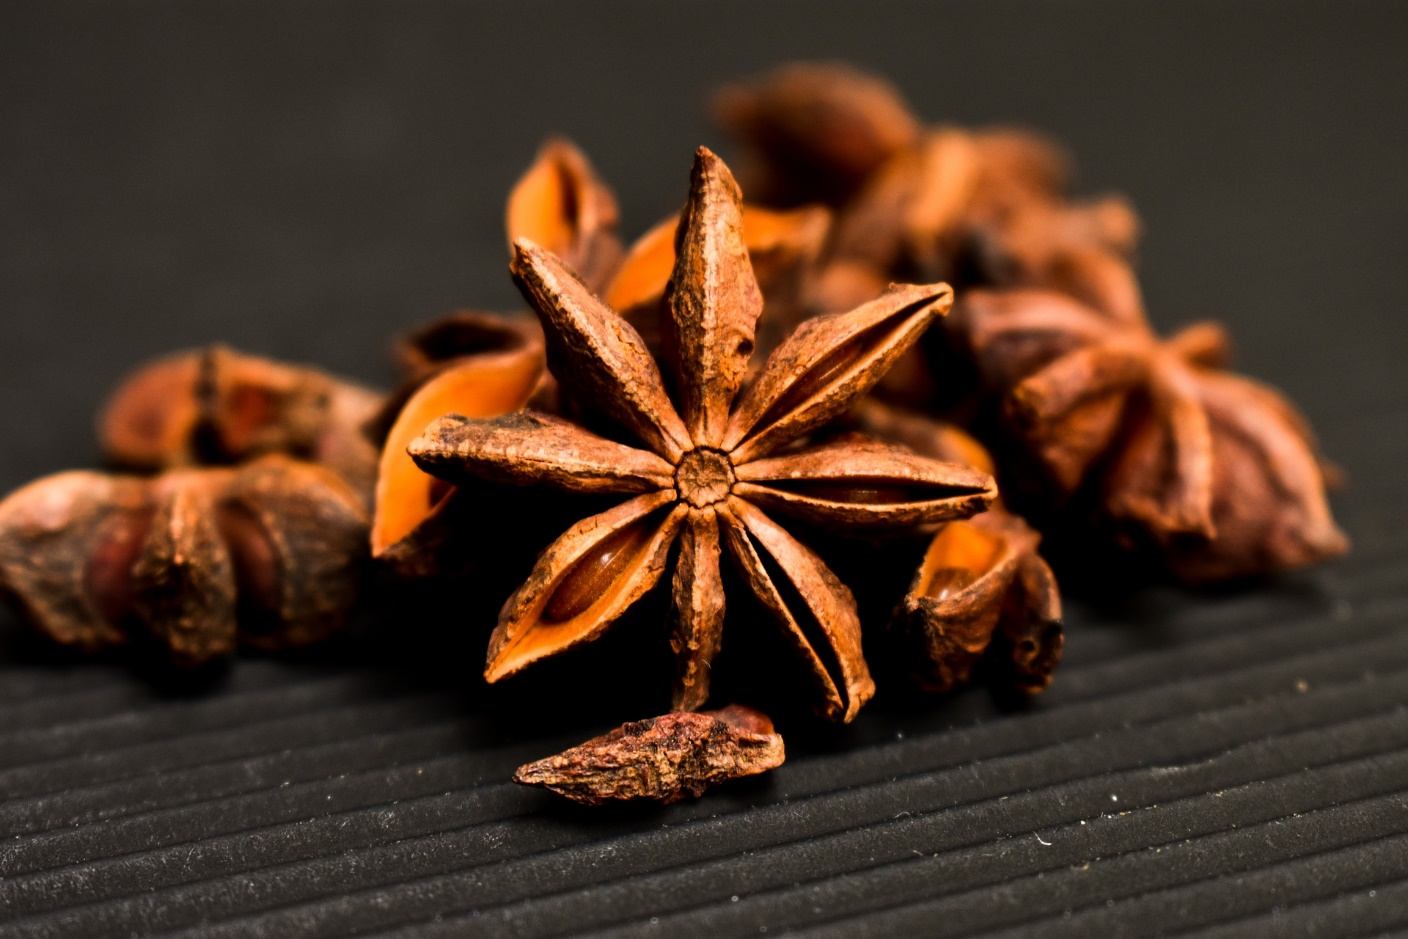 Pruning the star anise plant